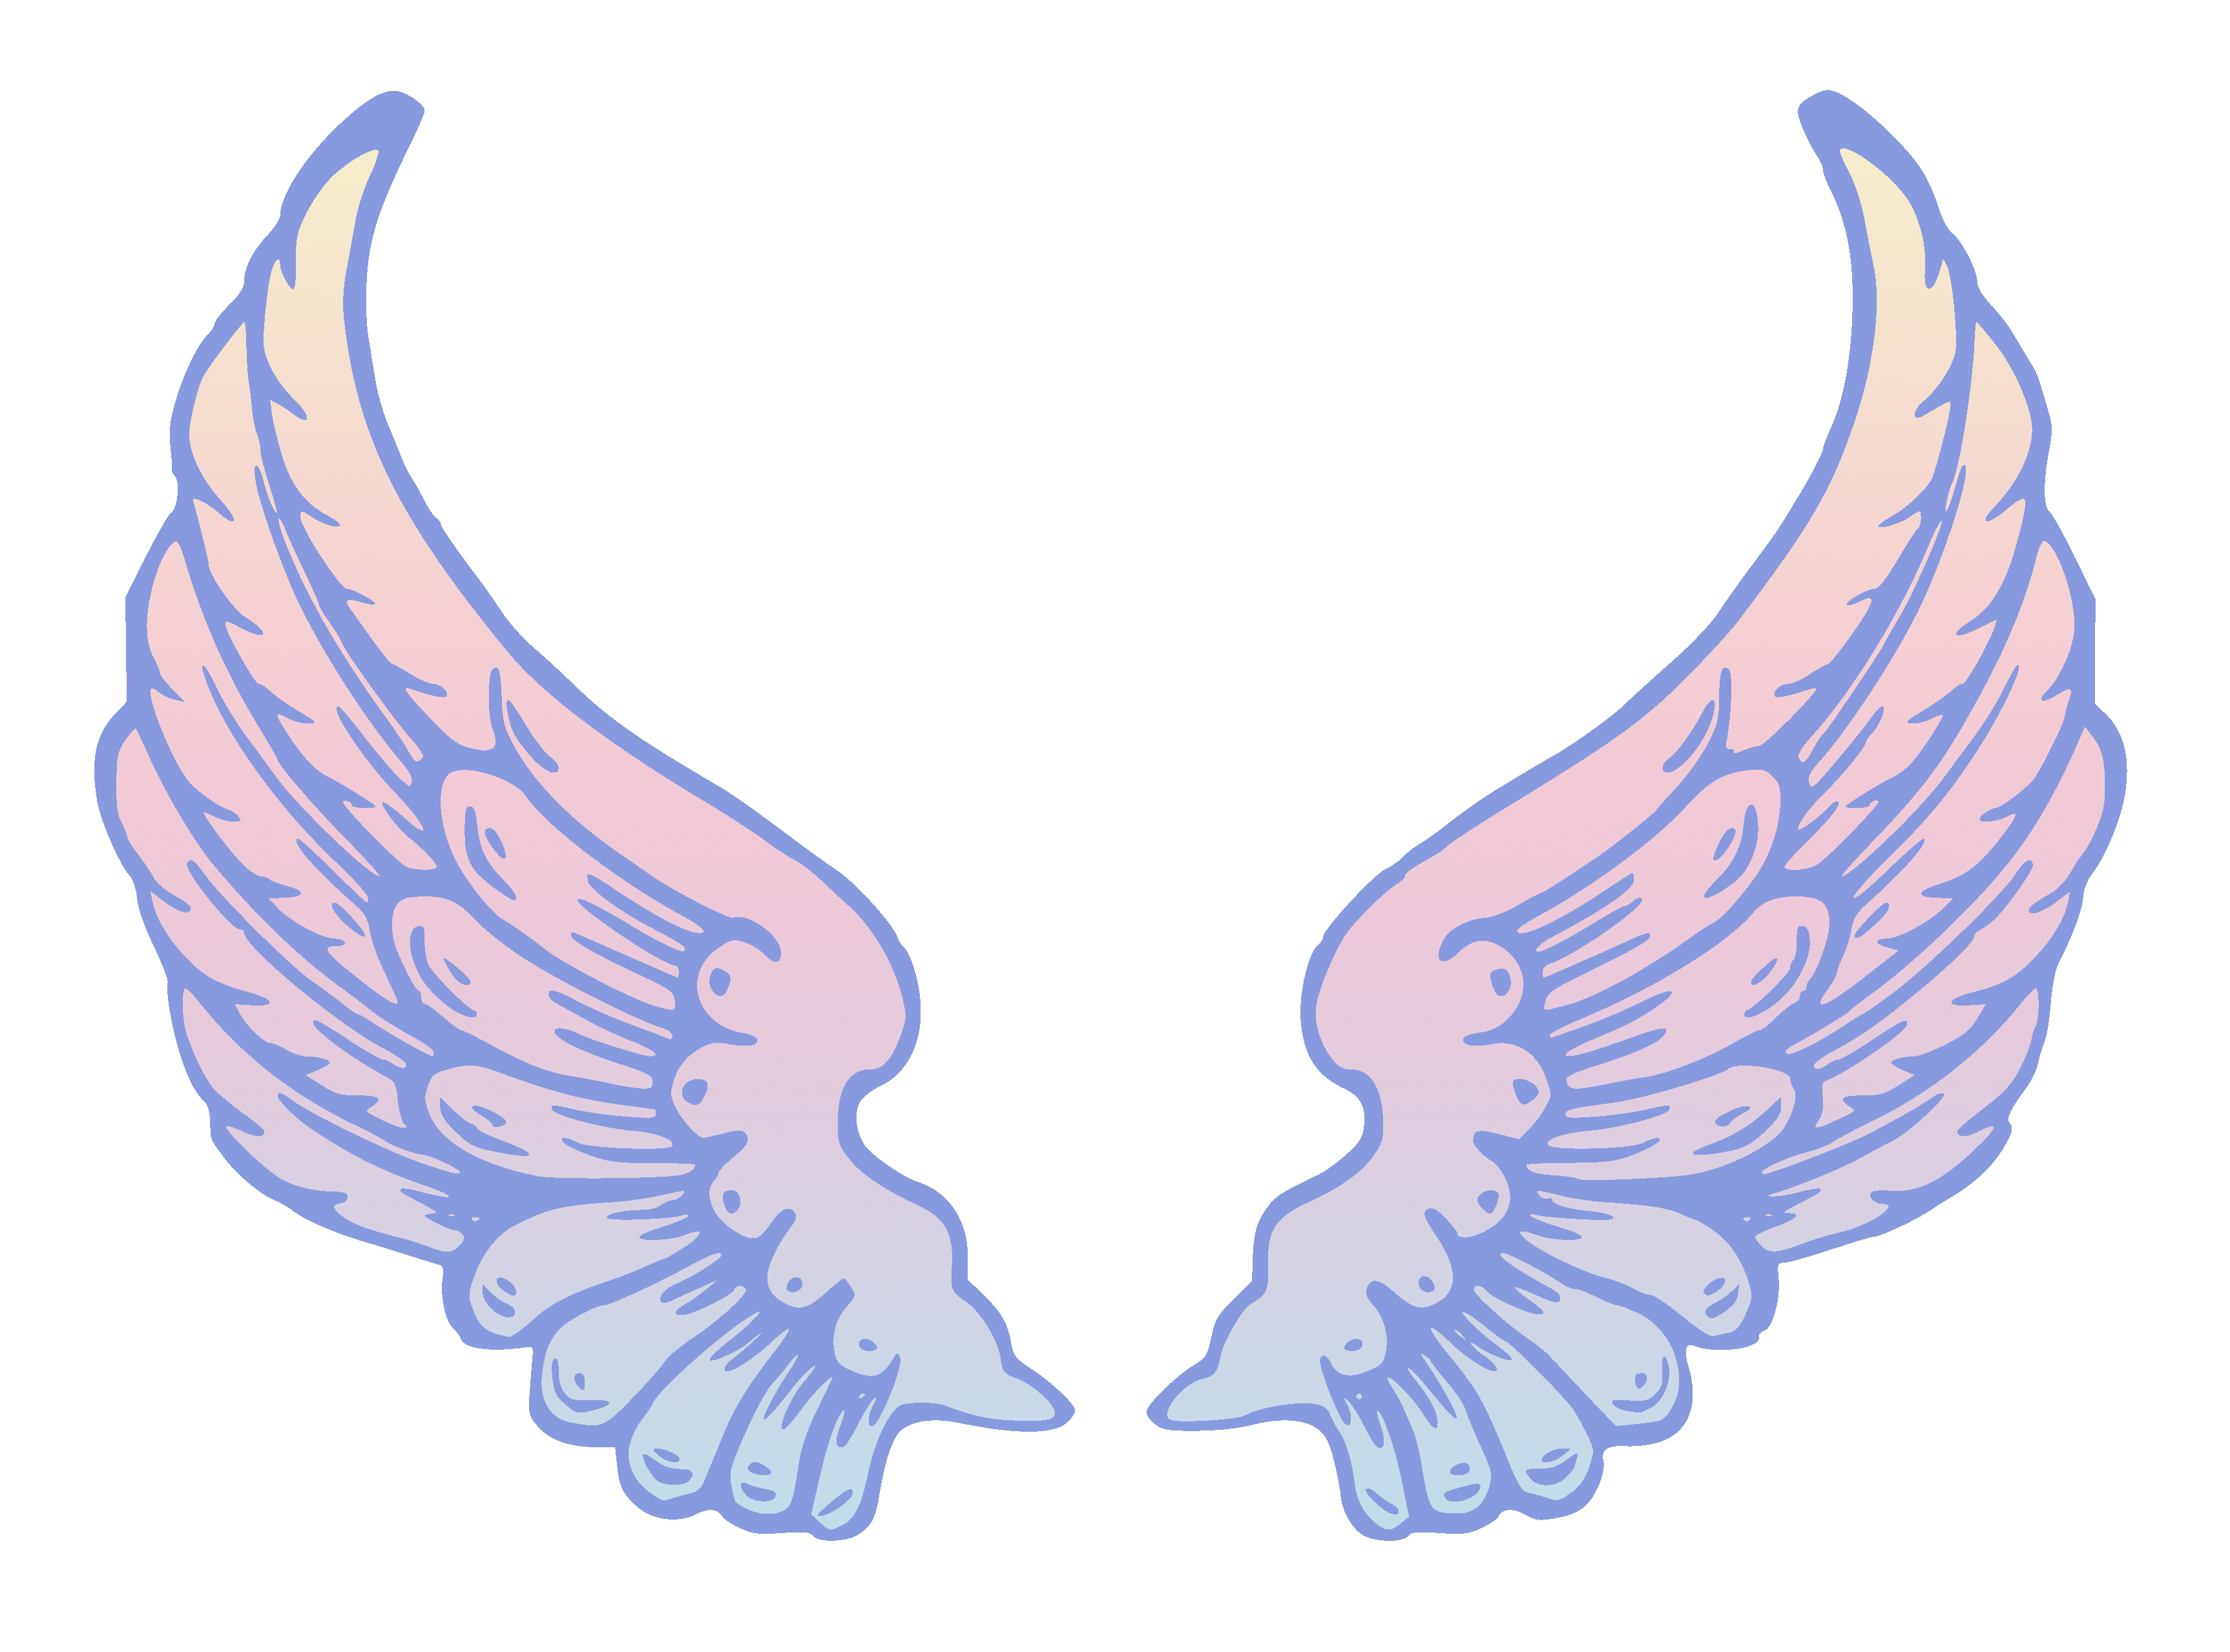 clipart royalty free download Wings clipart. Public domain pastel angel